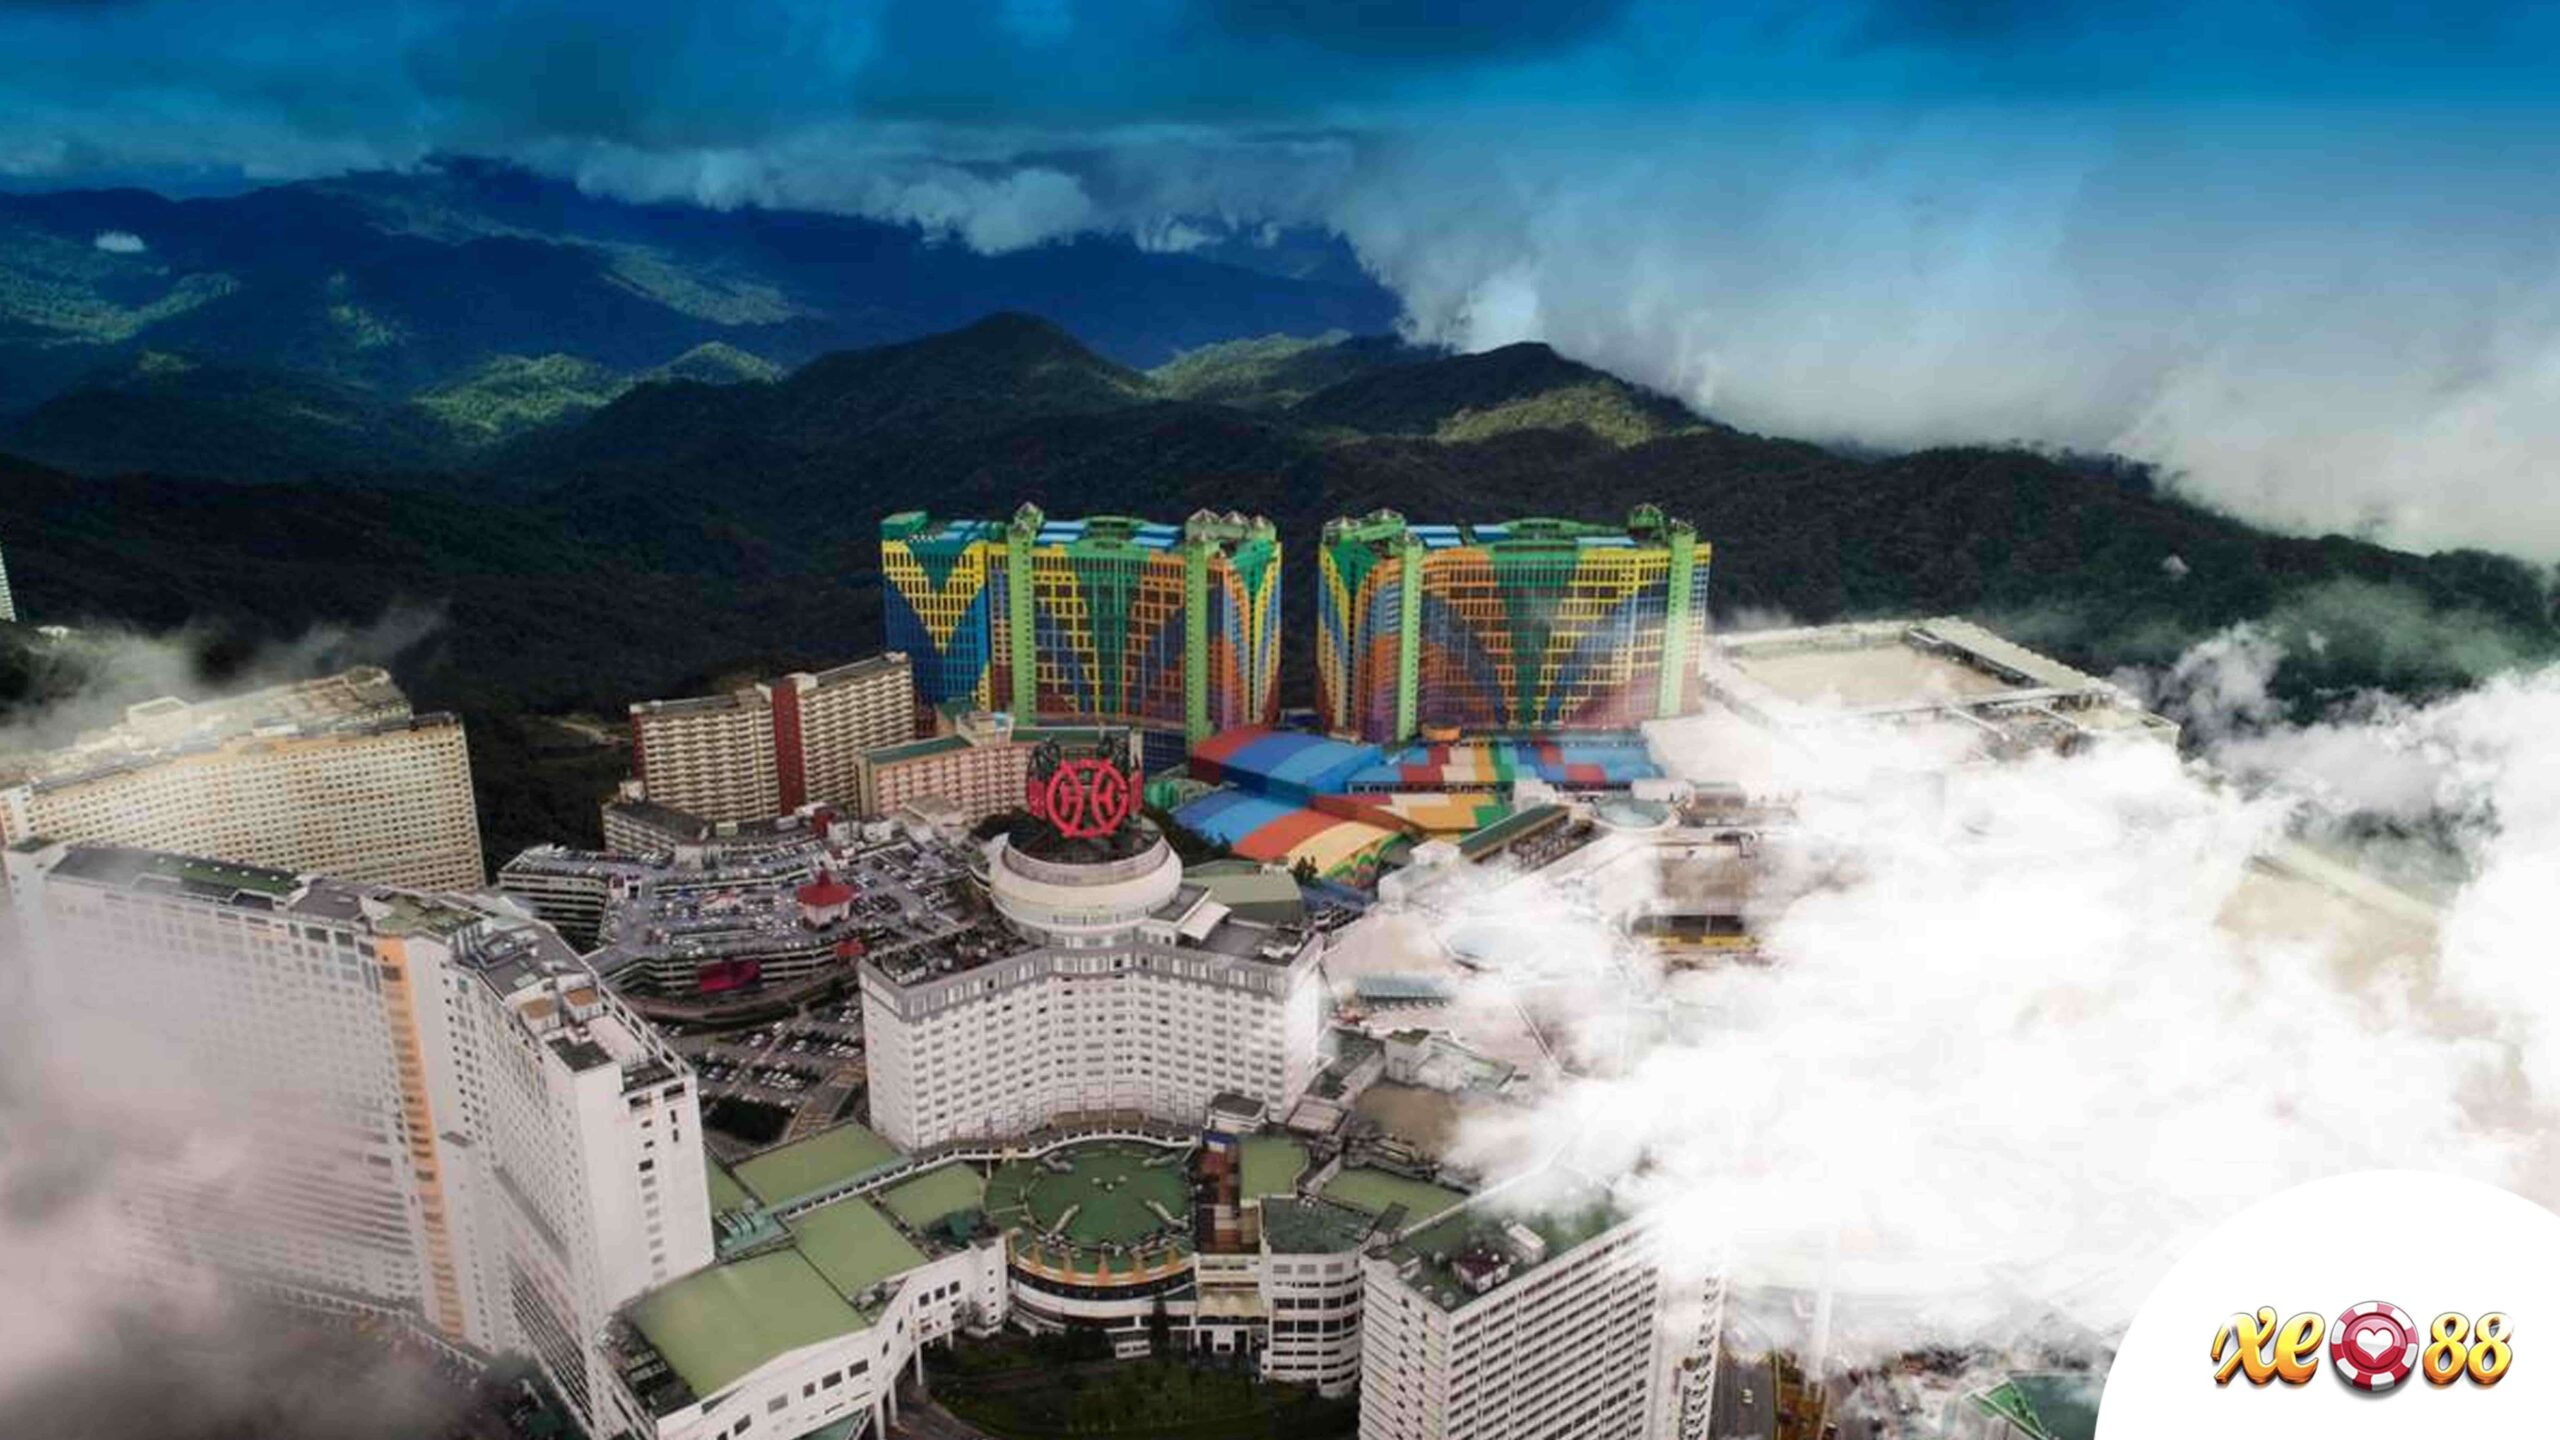 Genting-related shares rise as Covid-19 injection positive outlook brings hope of hotel, gambling establishment ops resumption